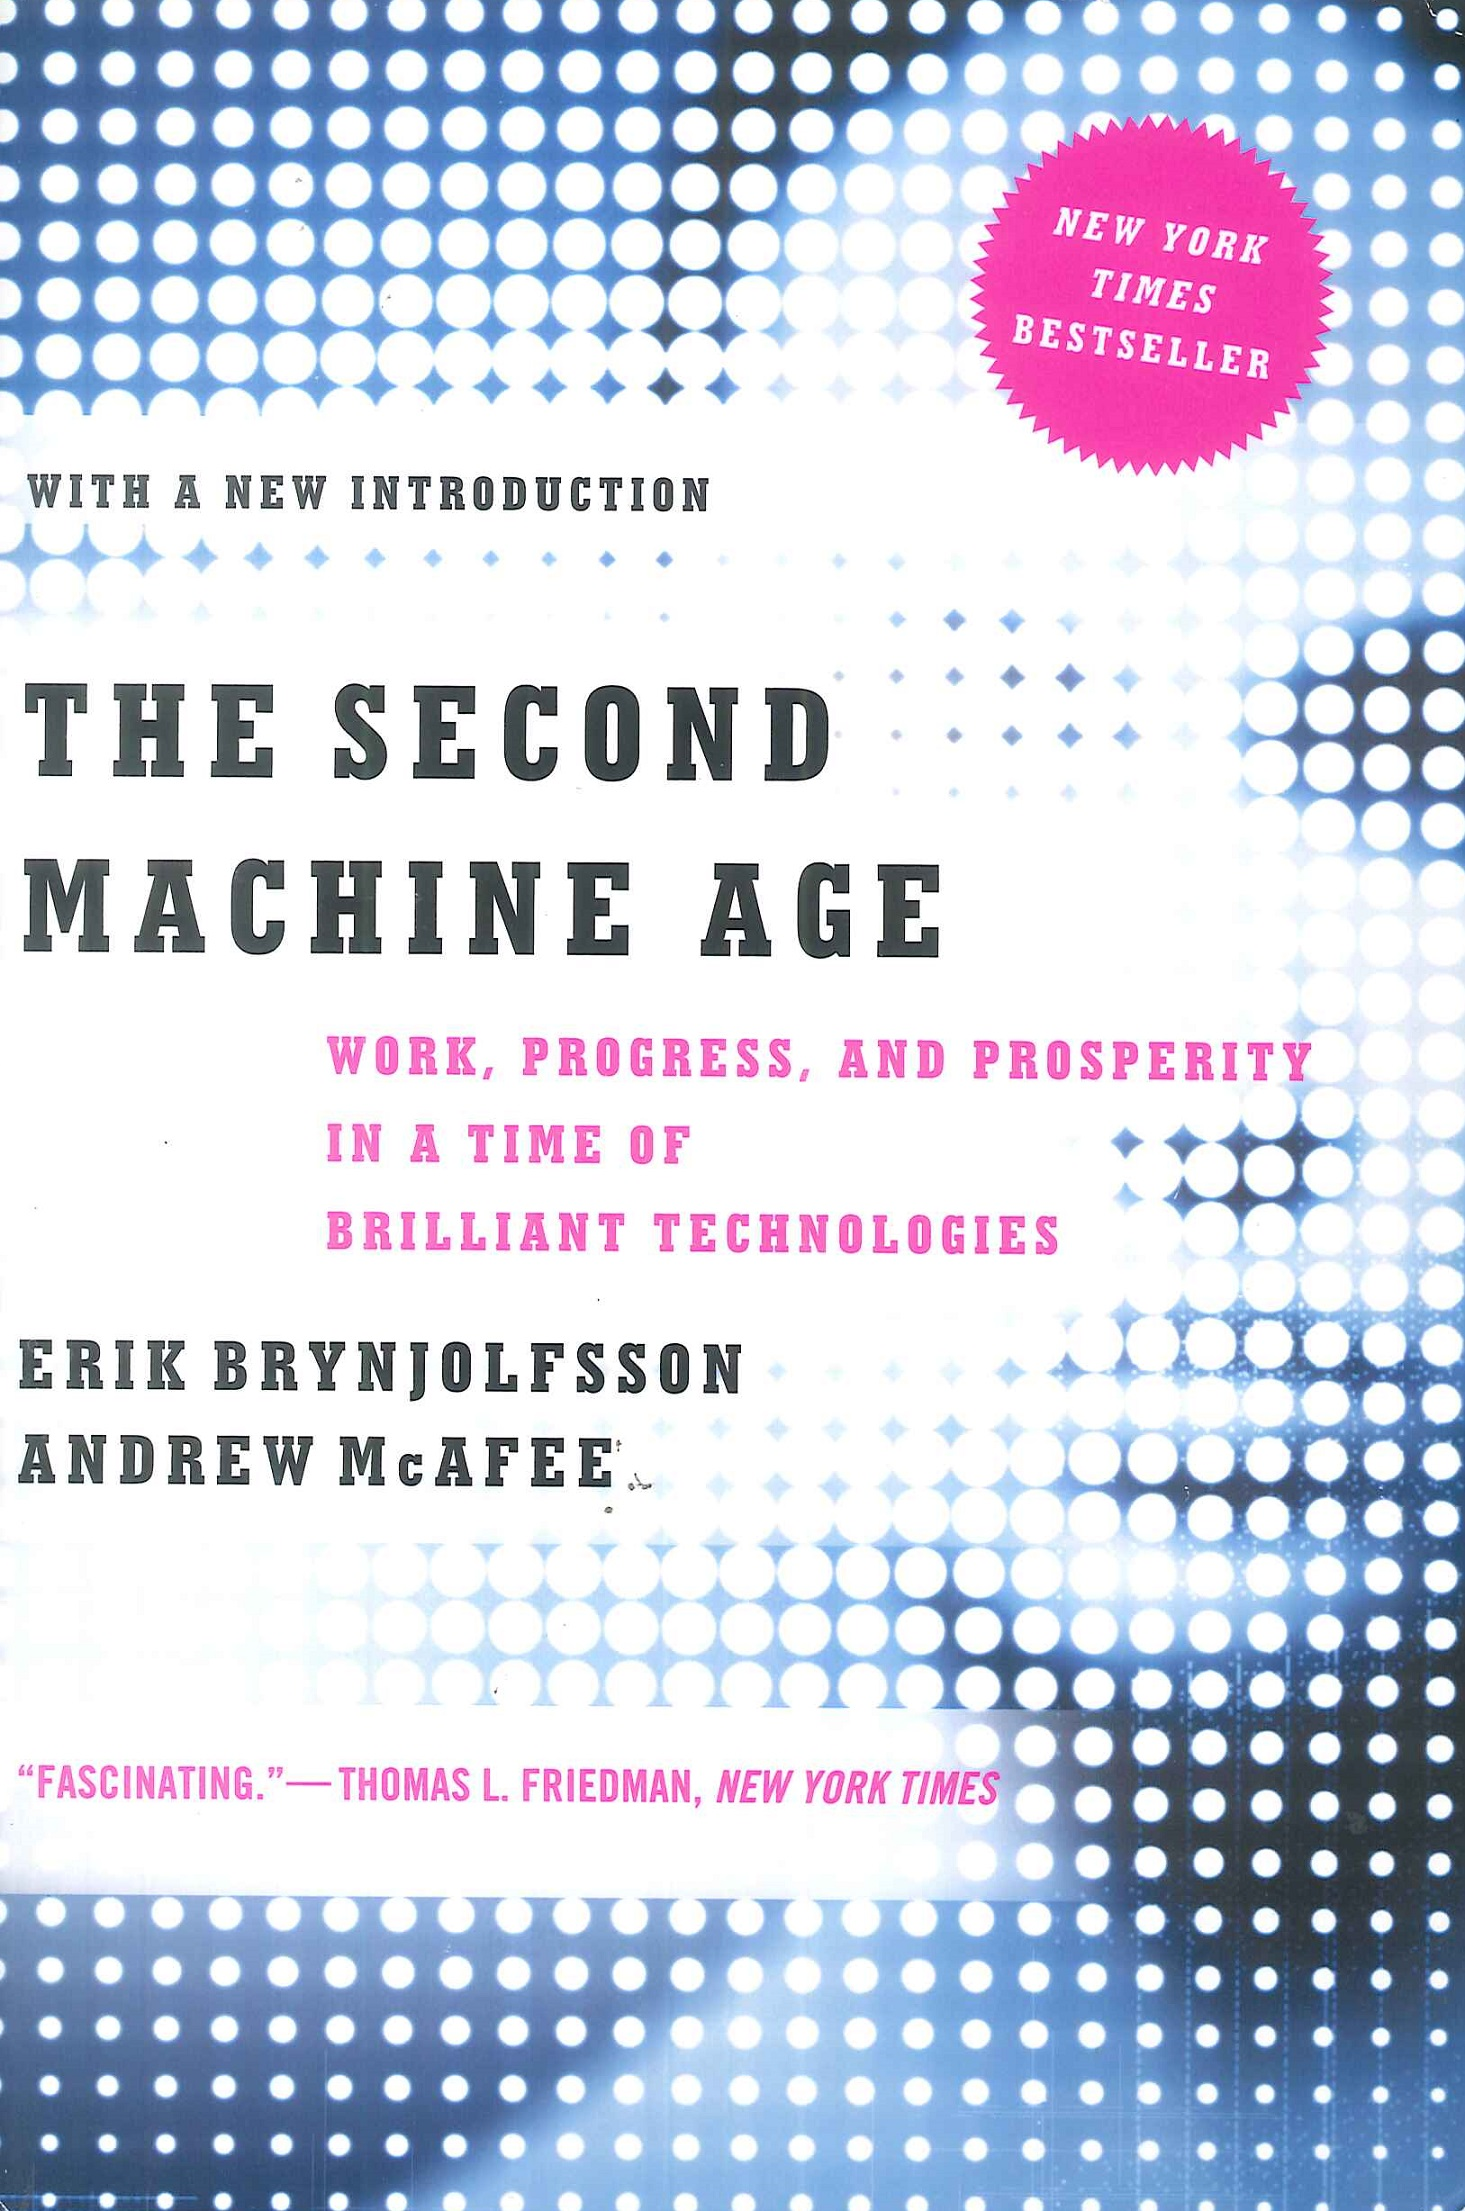 The second machine age:work, progress, and prosperity in a time of brilliant technologies